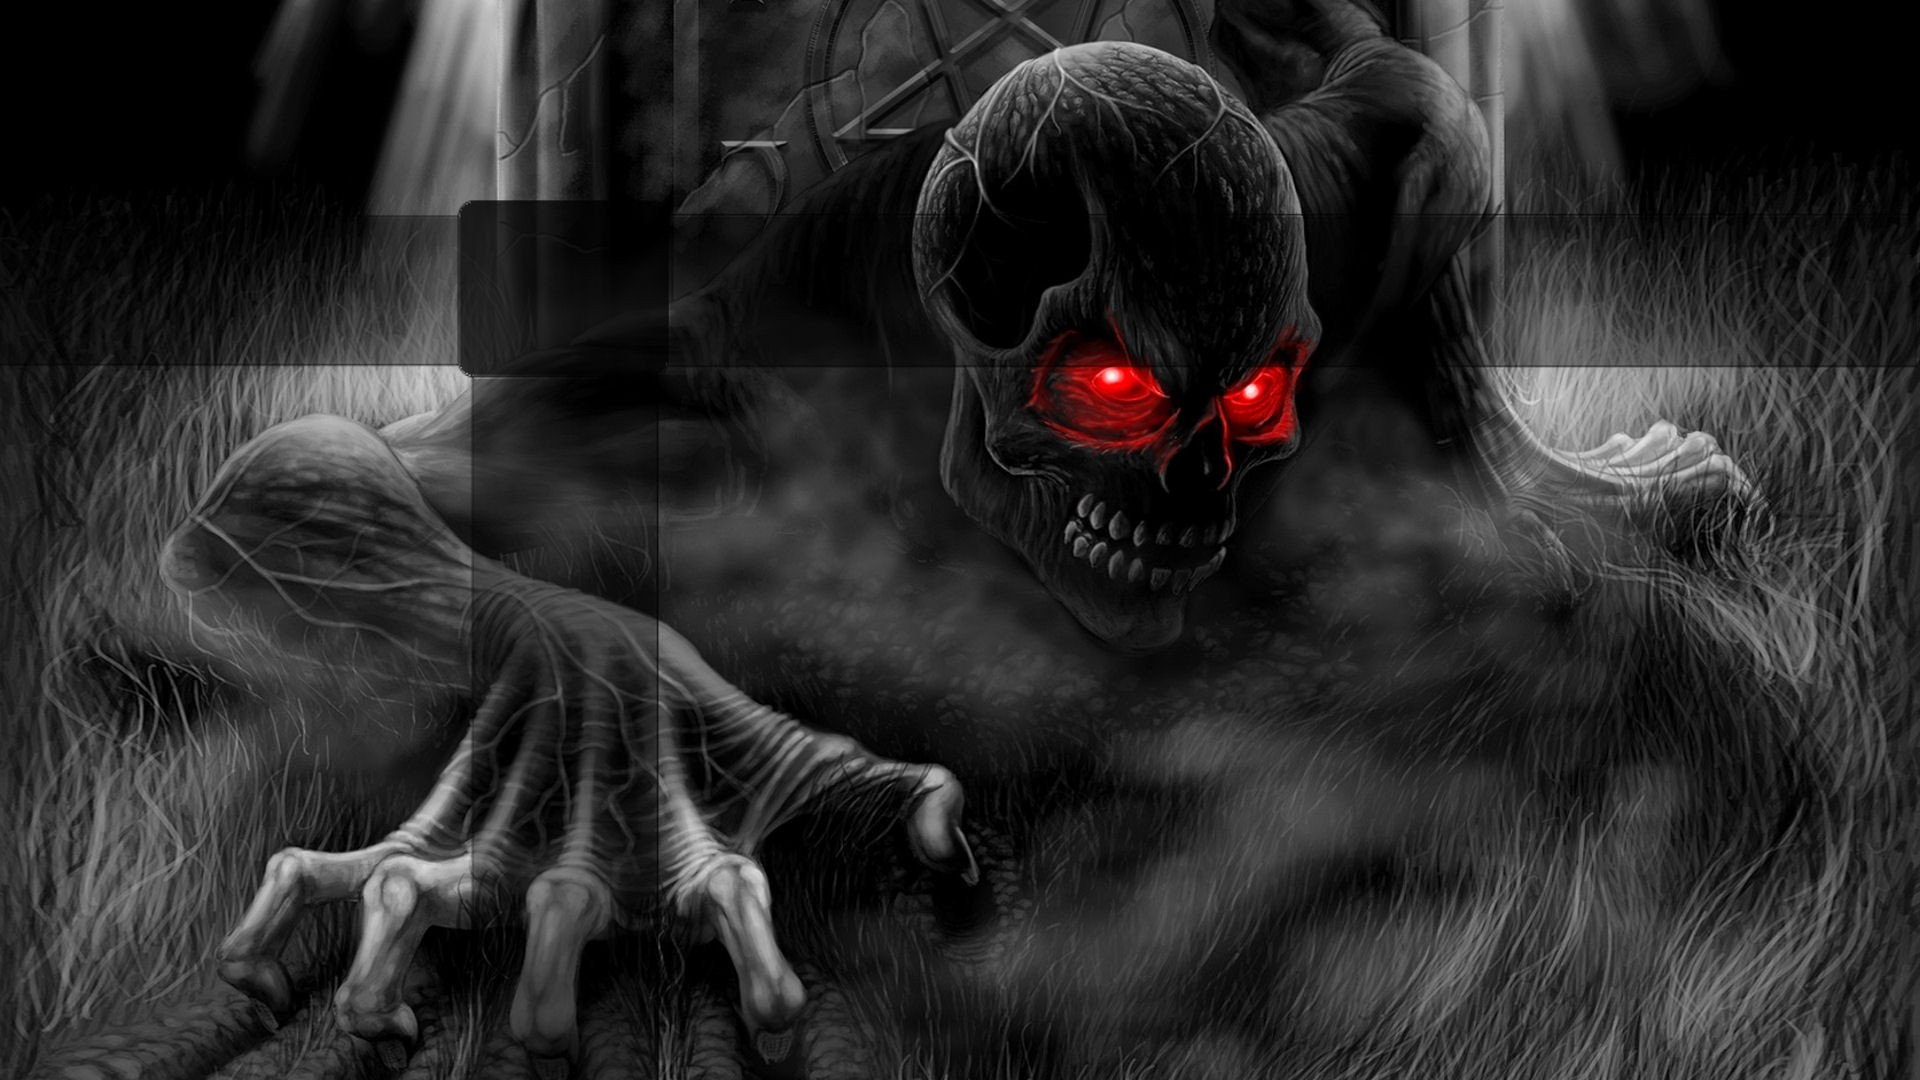 Scary Wallpaper ① Download Free Backgrounds For Desktop Mobile